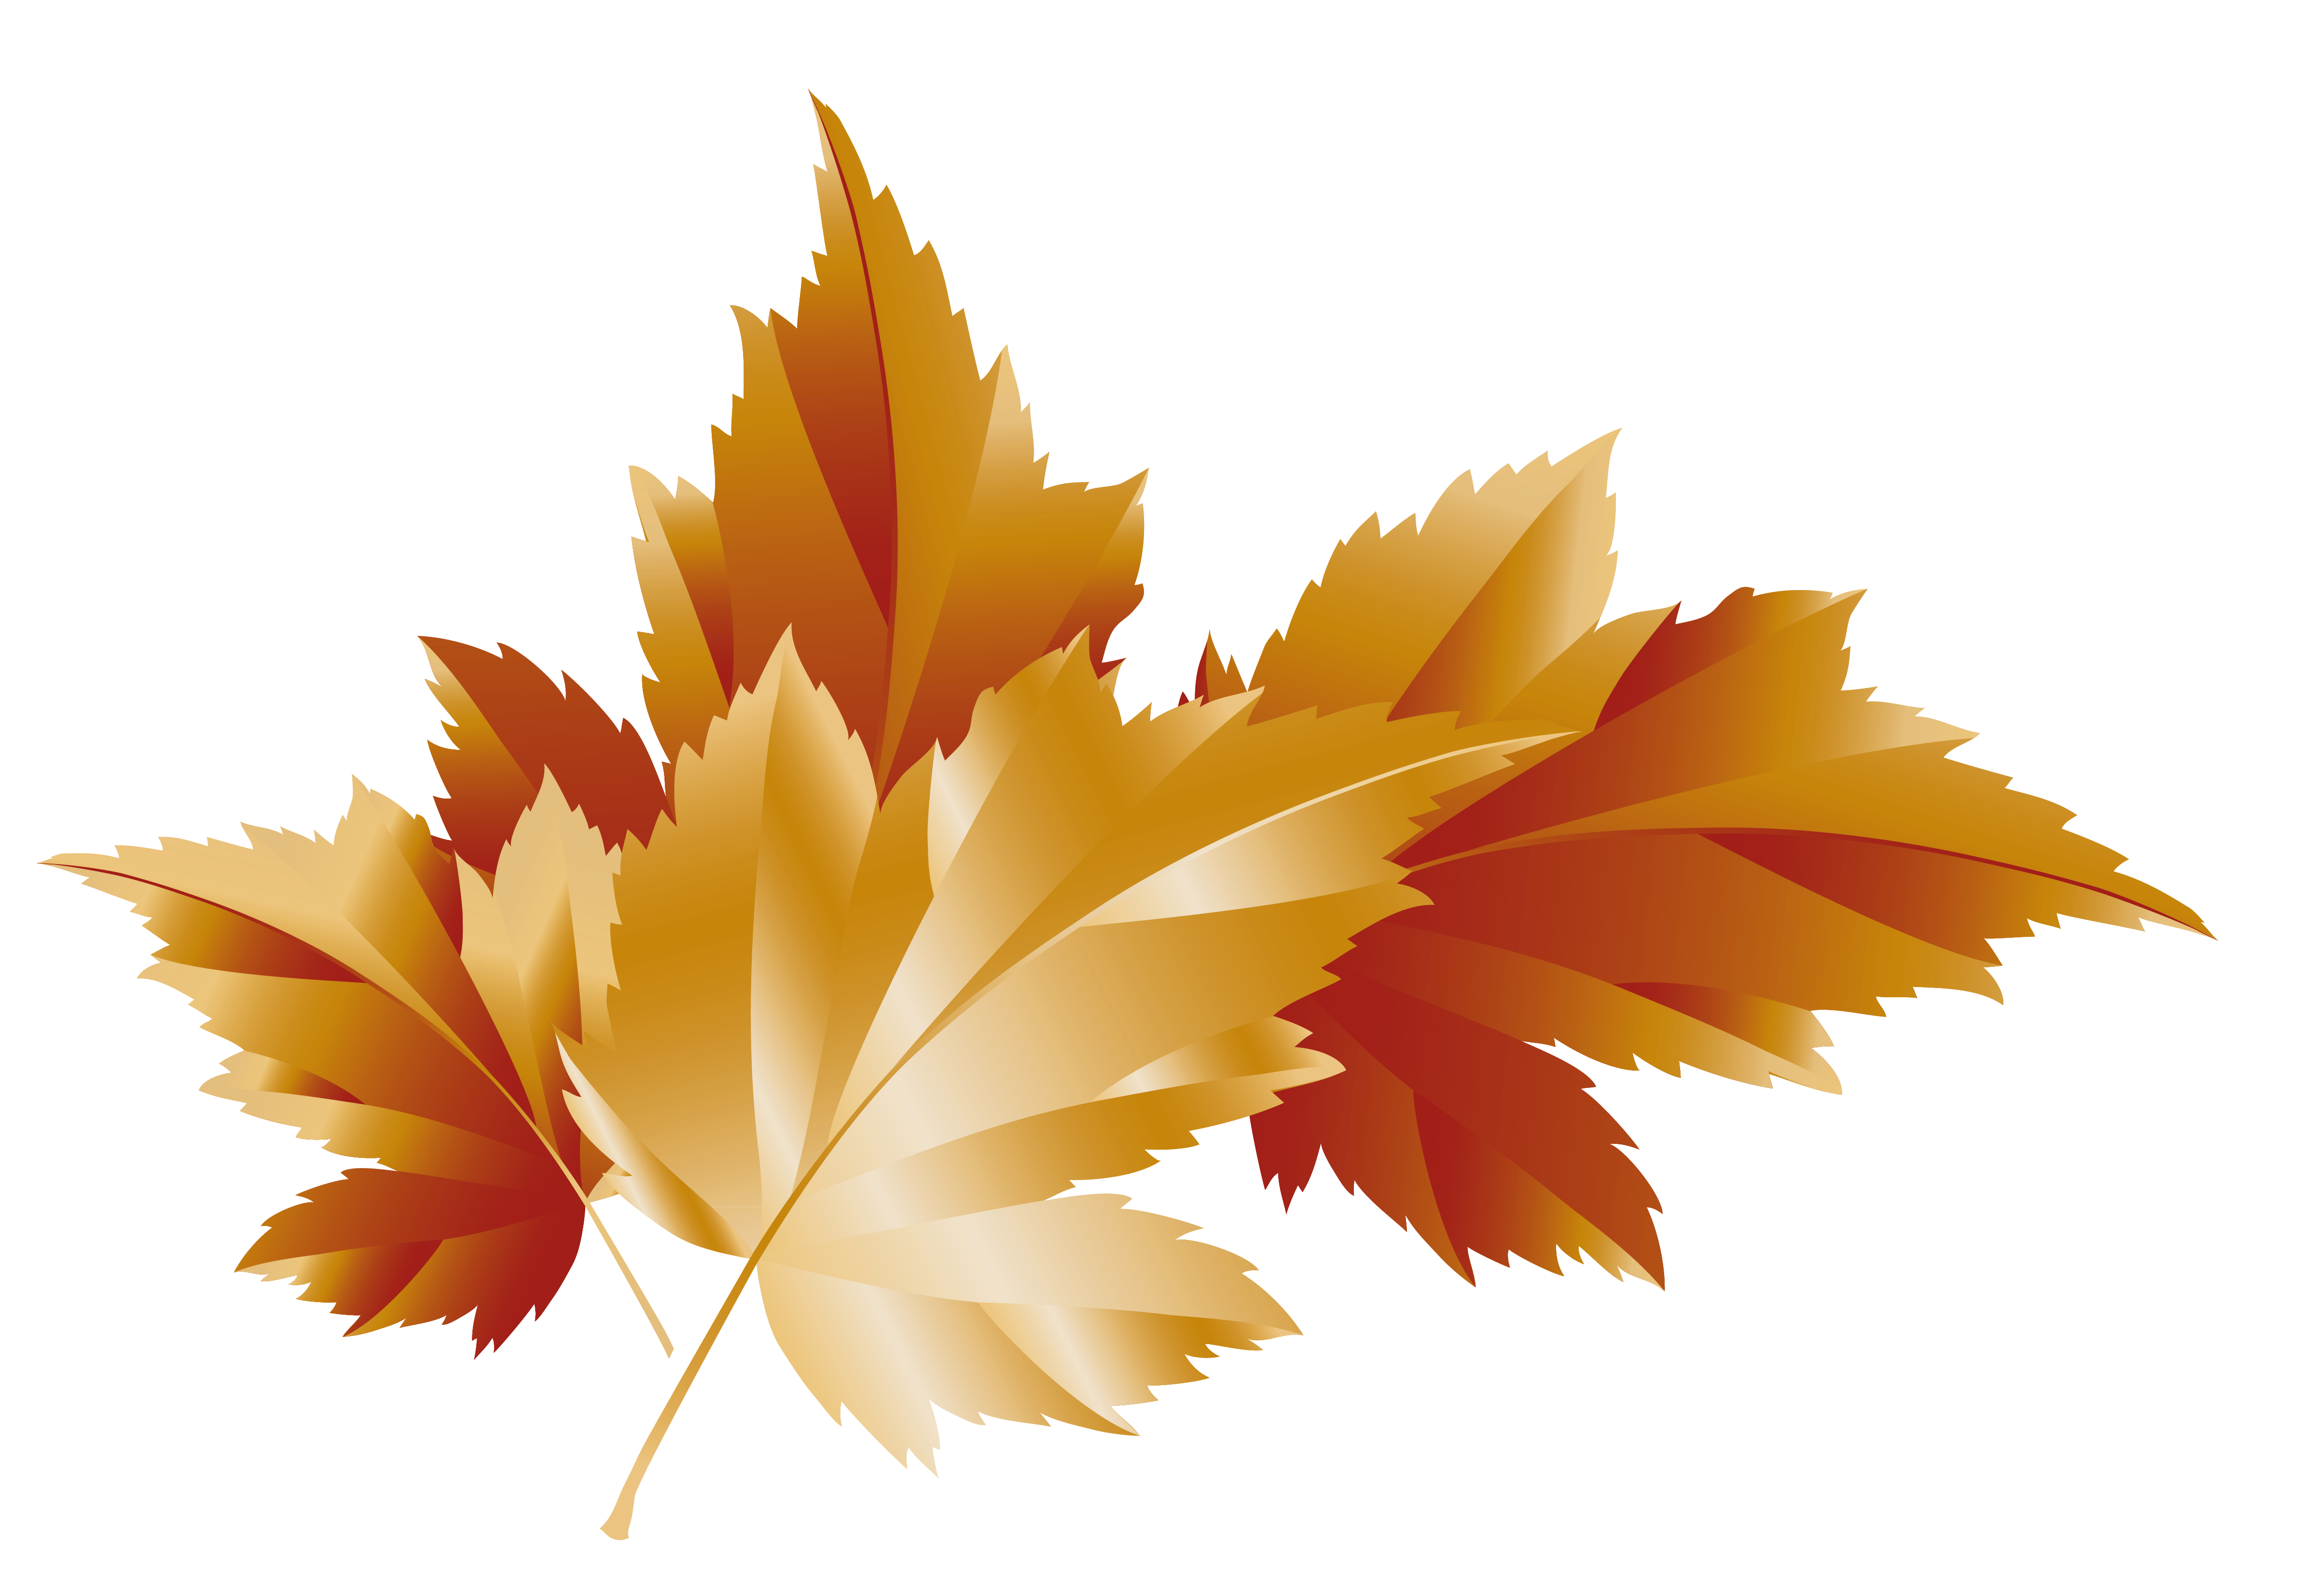 Leaf clipart transparent background.  collection of fall